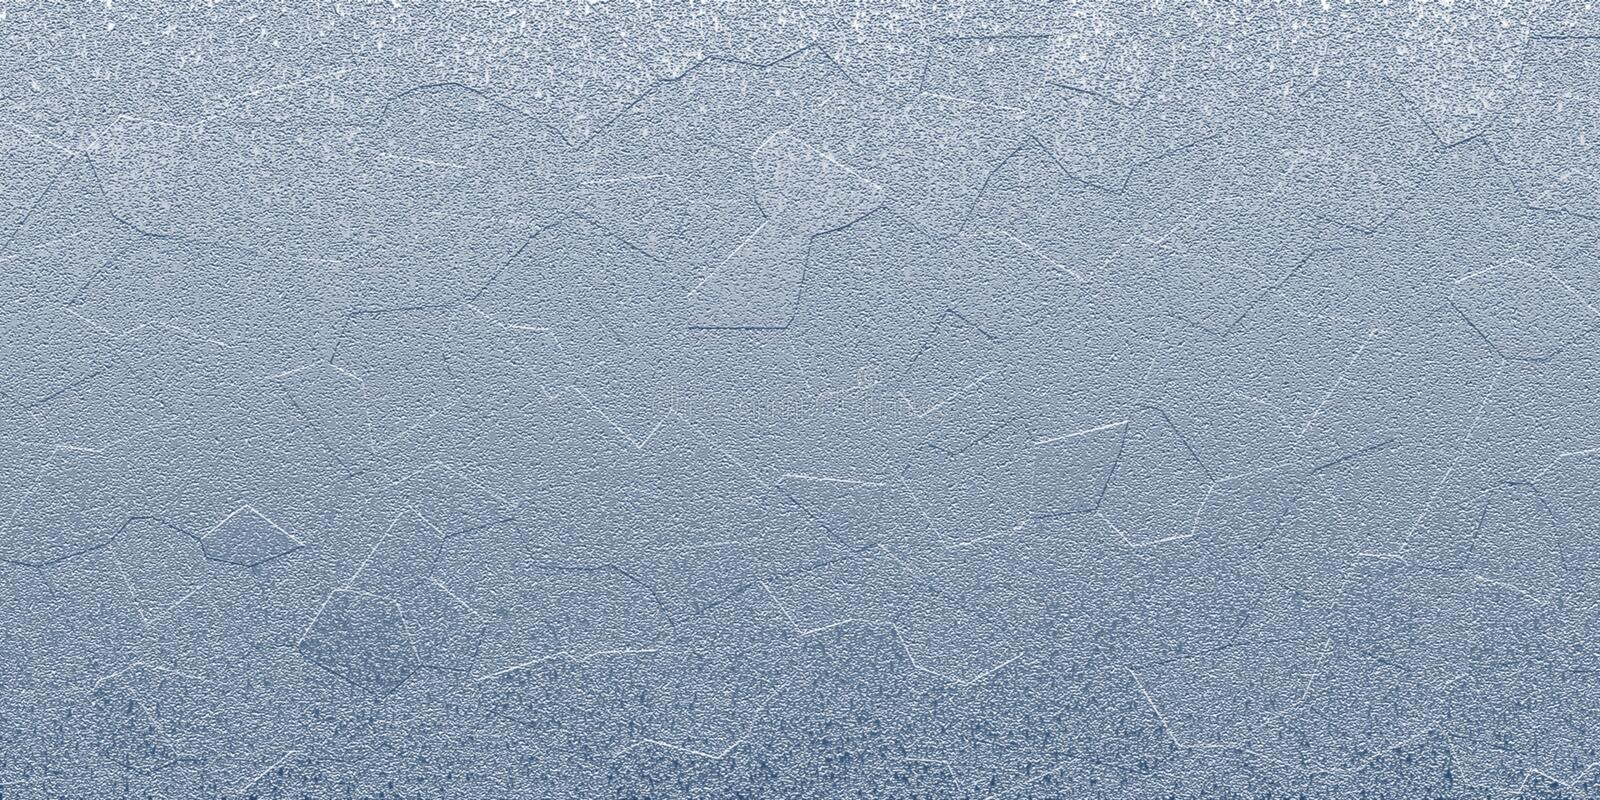 Texture, Frost, Sky, Freezing royalty free stock photography